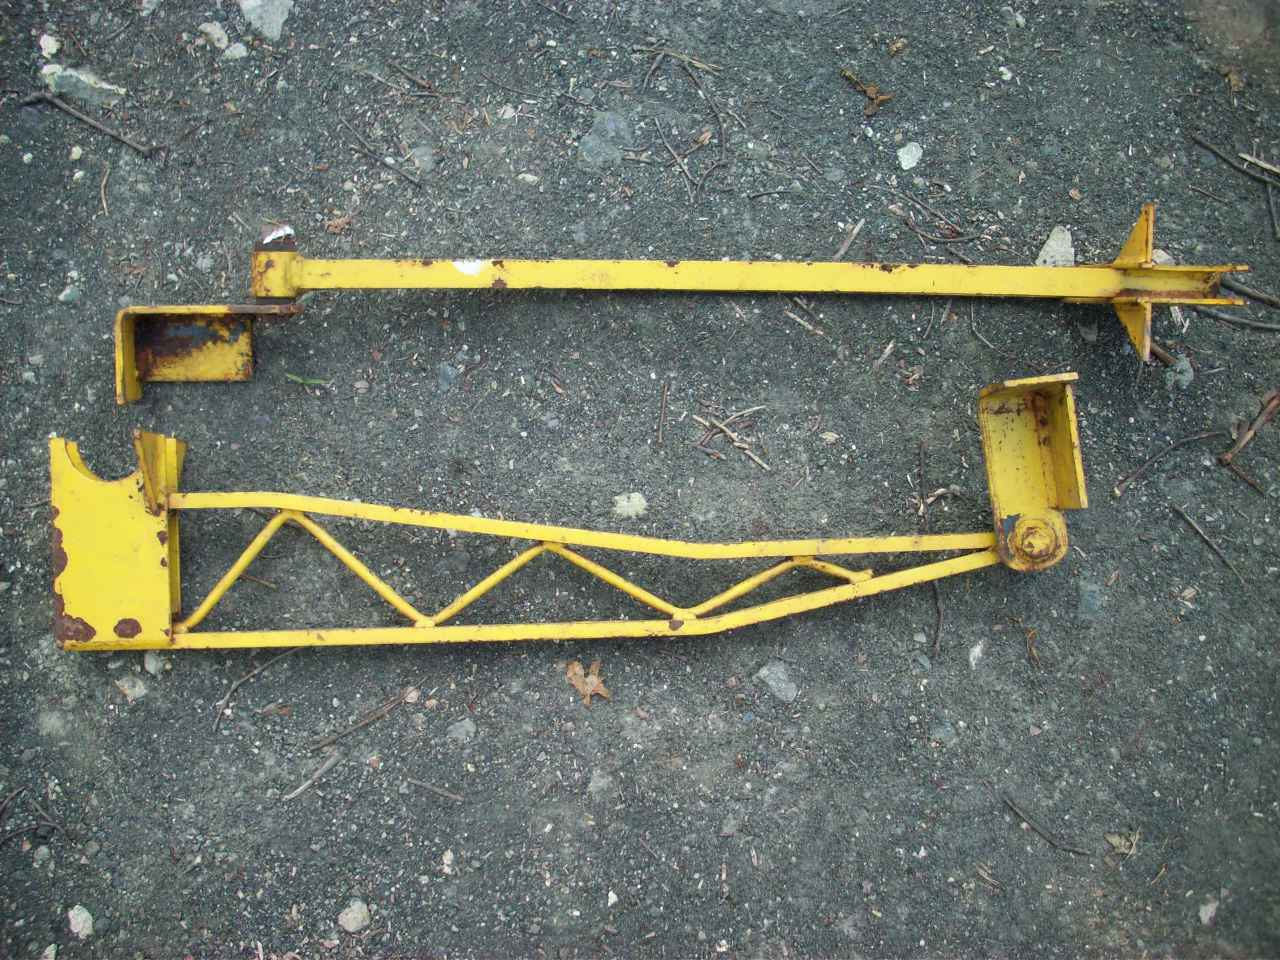 Vintage Ladder Bars - What do they fit?? - Moparts Forums